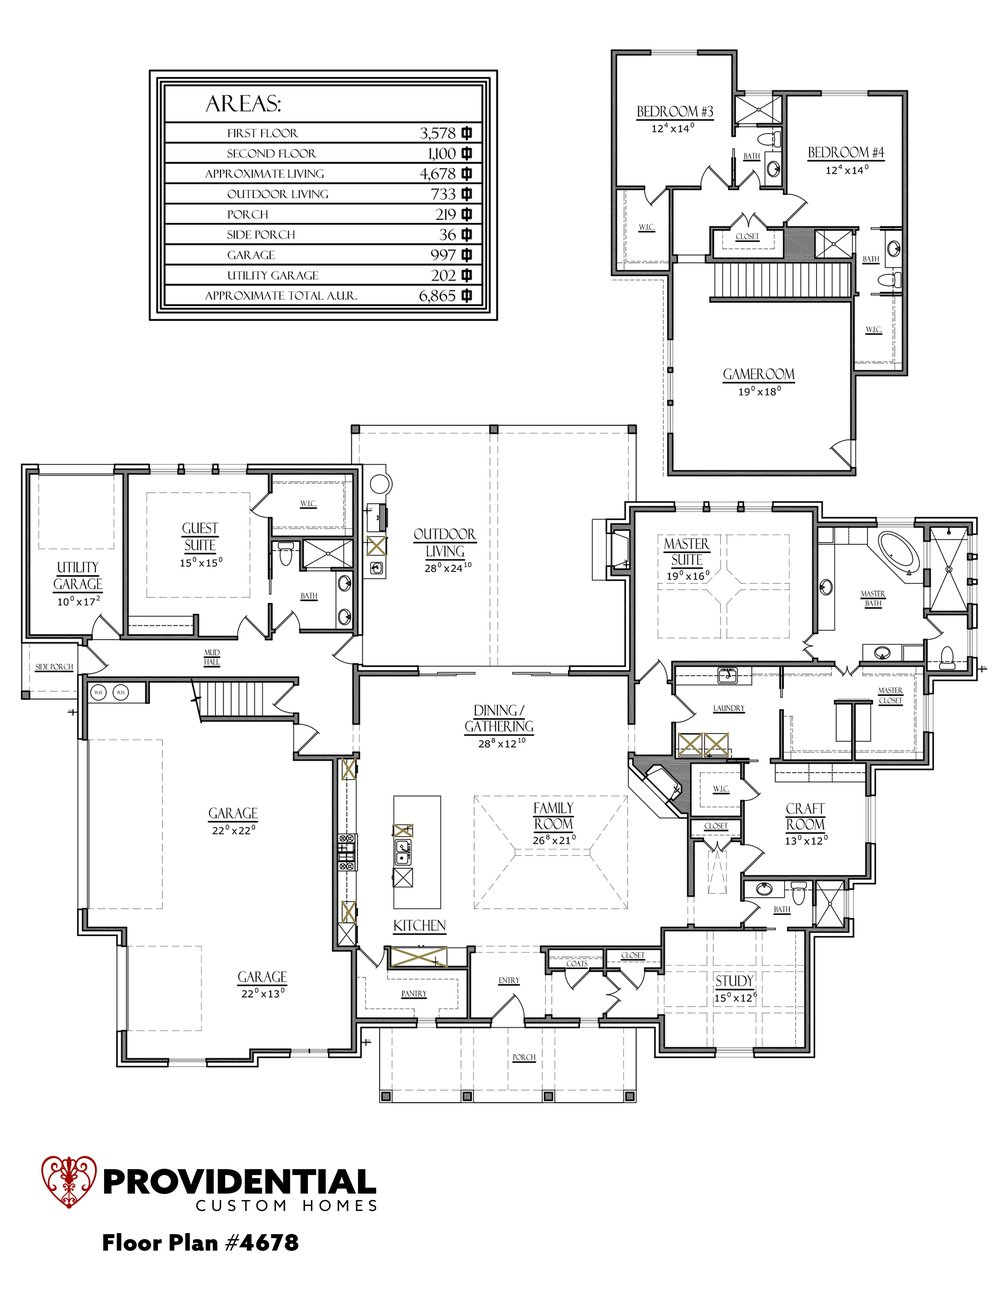 The FLOOR PLAN #4678.jpg